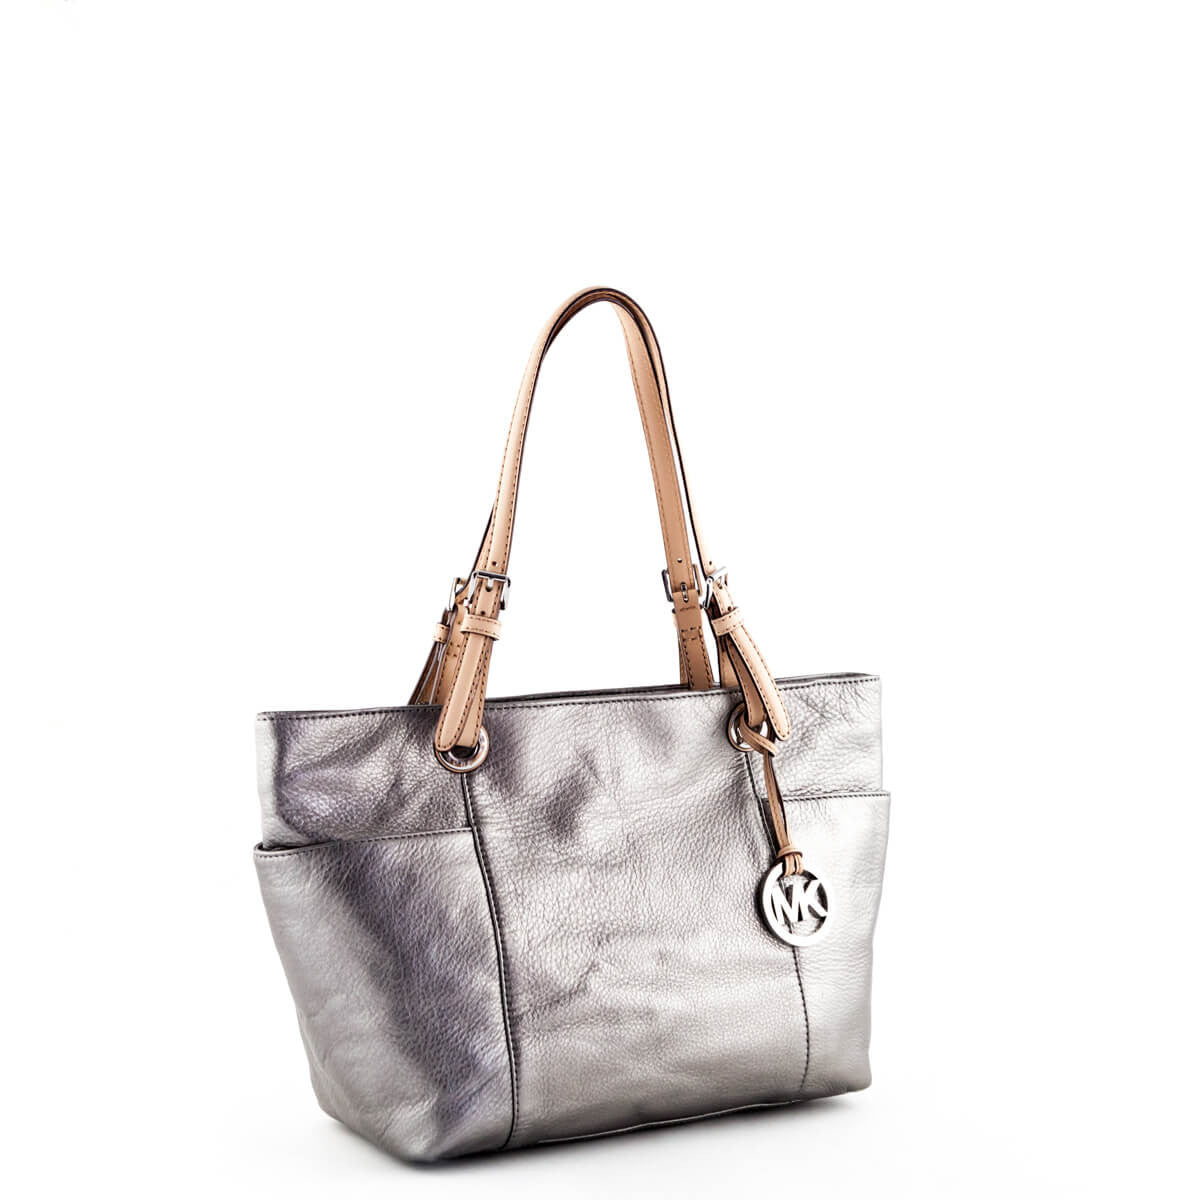 97a58cc787f7 Buy michael kors pewter handbag > OFF59% Discounted